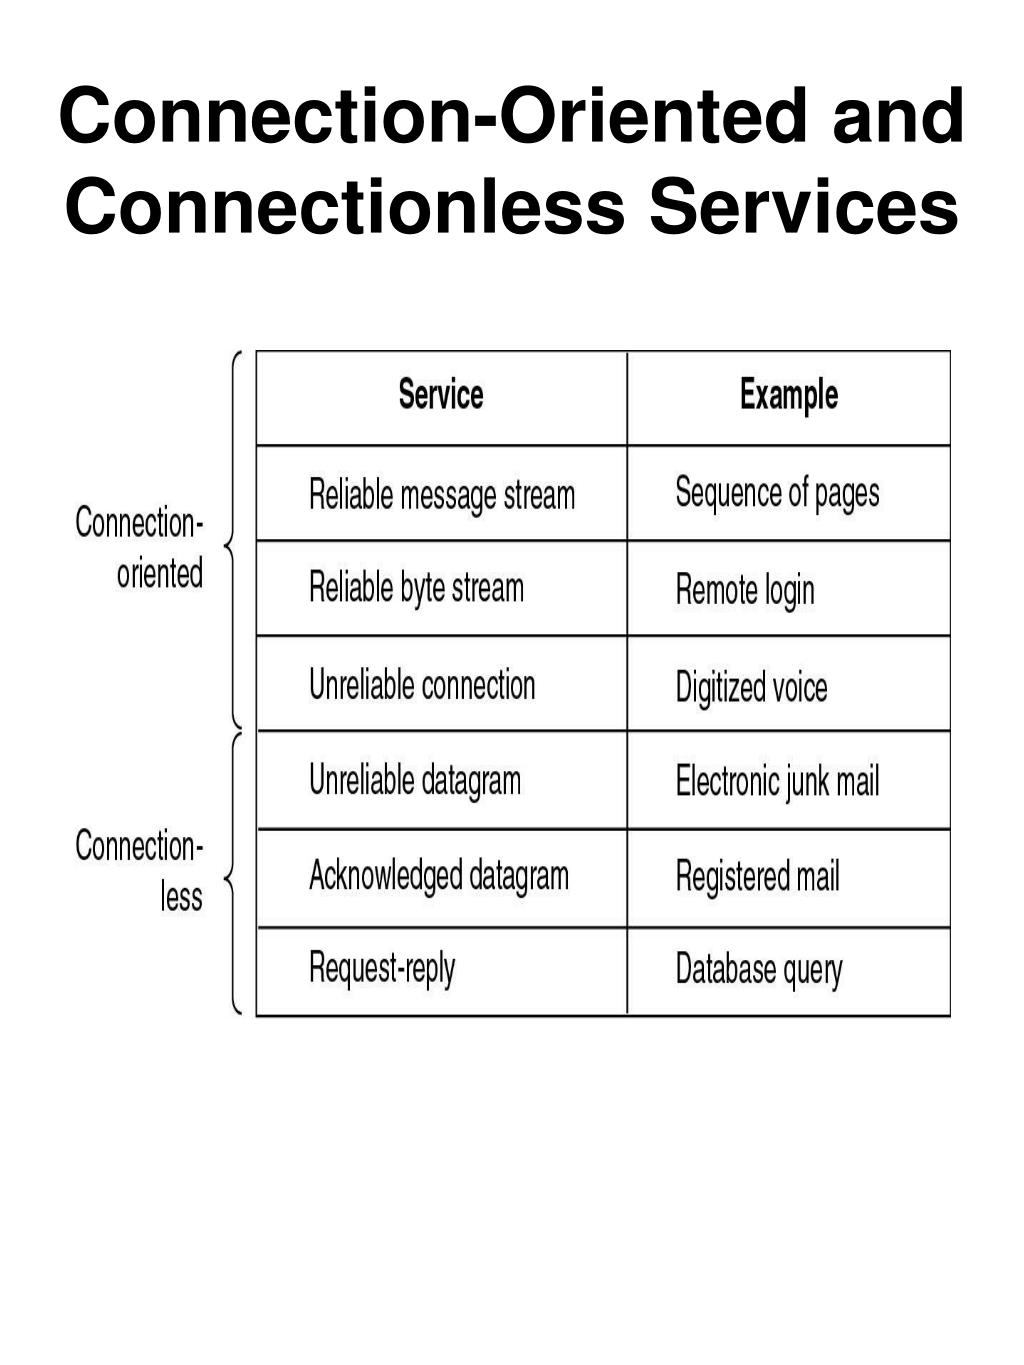 Connection-Oriented and Connectionless Services